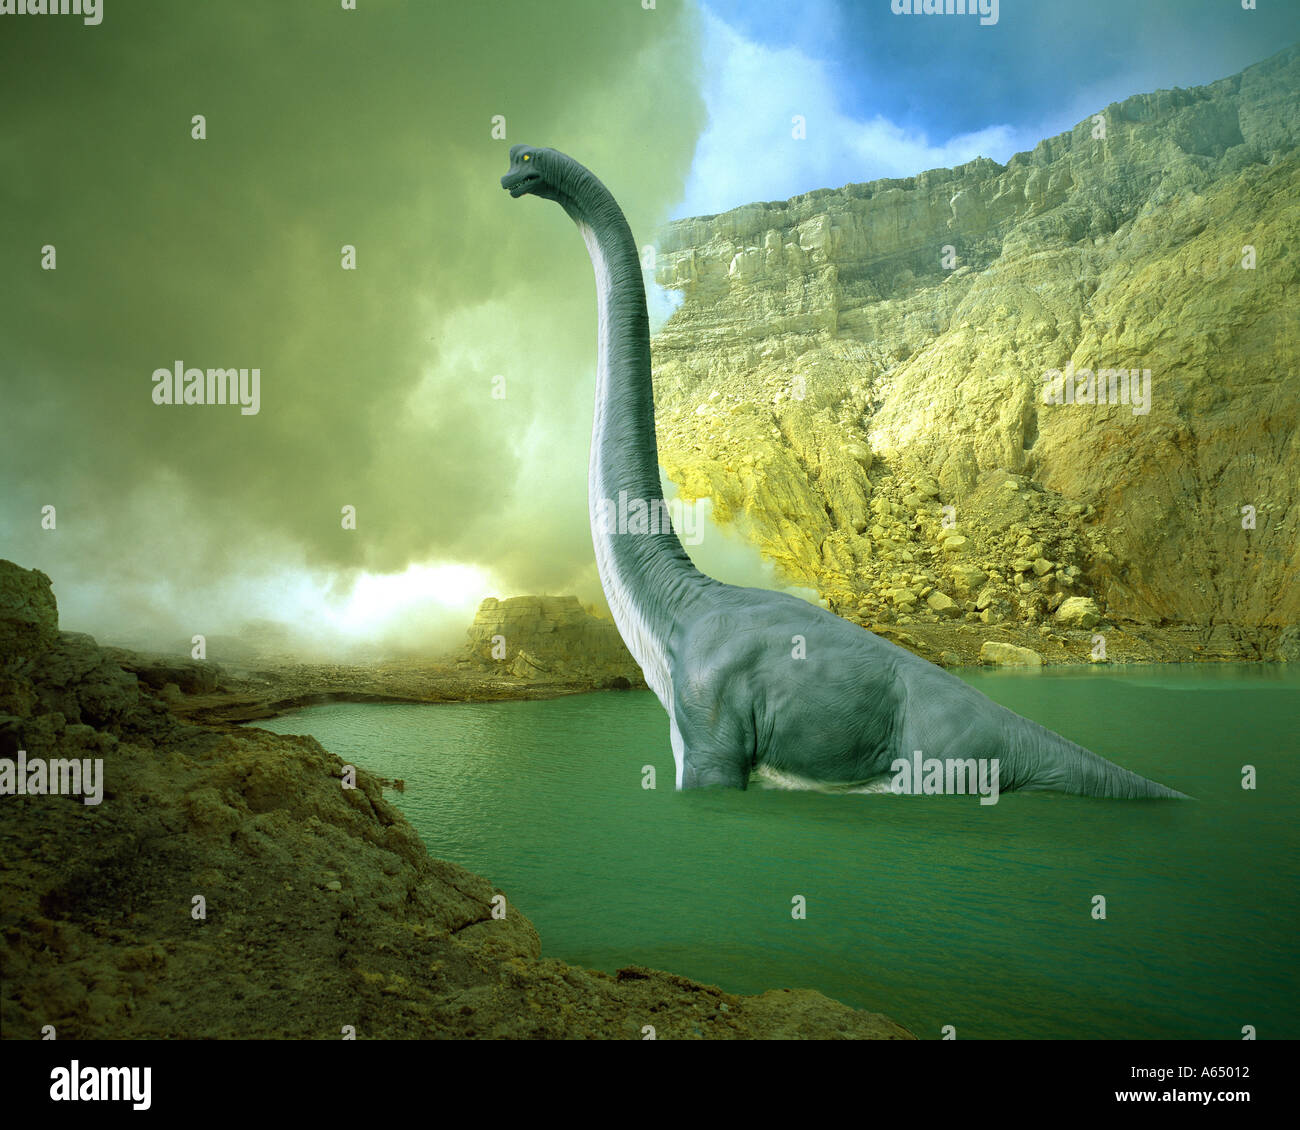 Brachiosaurus in crater lake of active volcano - Stock Image